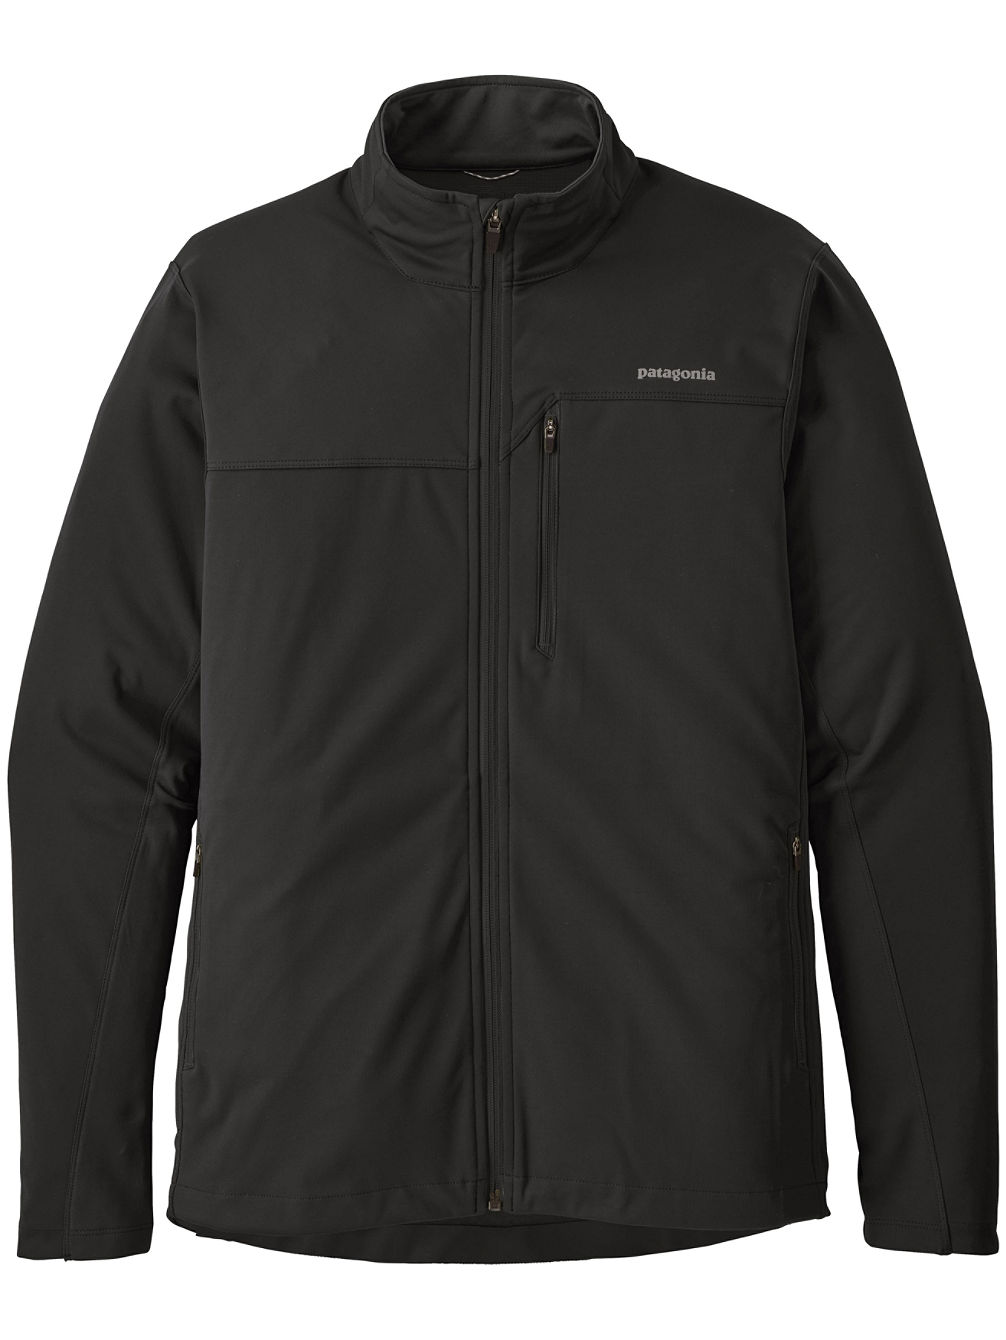 Buy Patagonia Wind Shield Fleece Jacket online at blue-tomato.com 5e91020a94ae